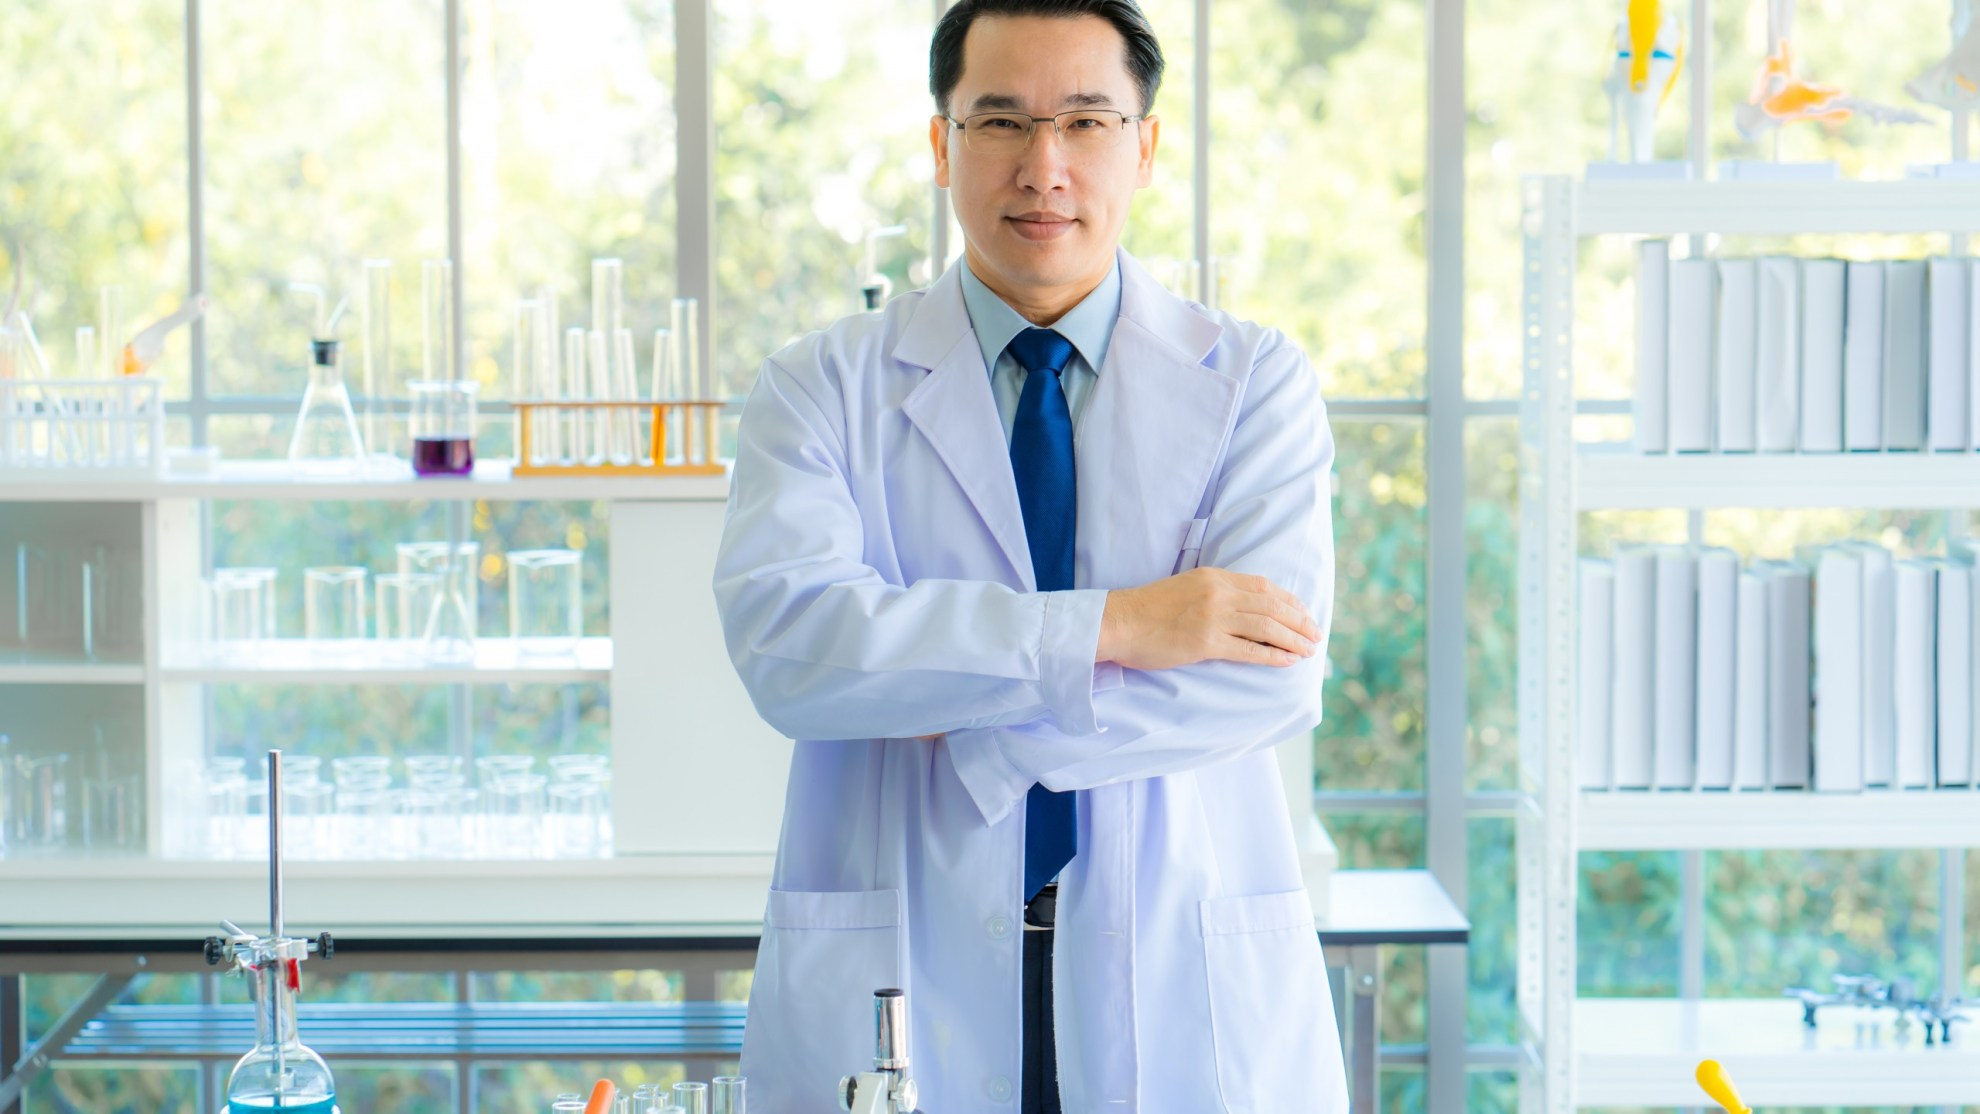 A middle aged man scientist smiling happily with his arms crossed posing at her laboratory colleagues. A confident professor CEO standing preparing equipment for teaching collage student. Copy space.